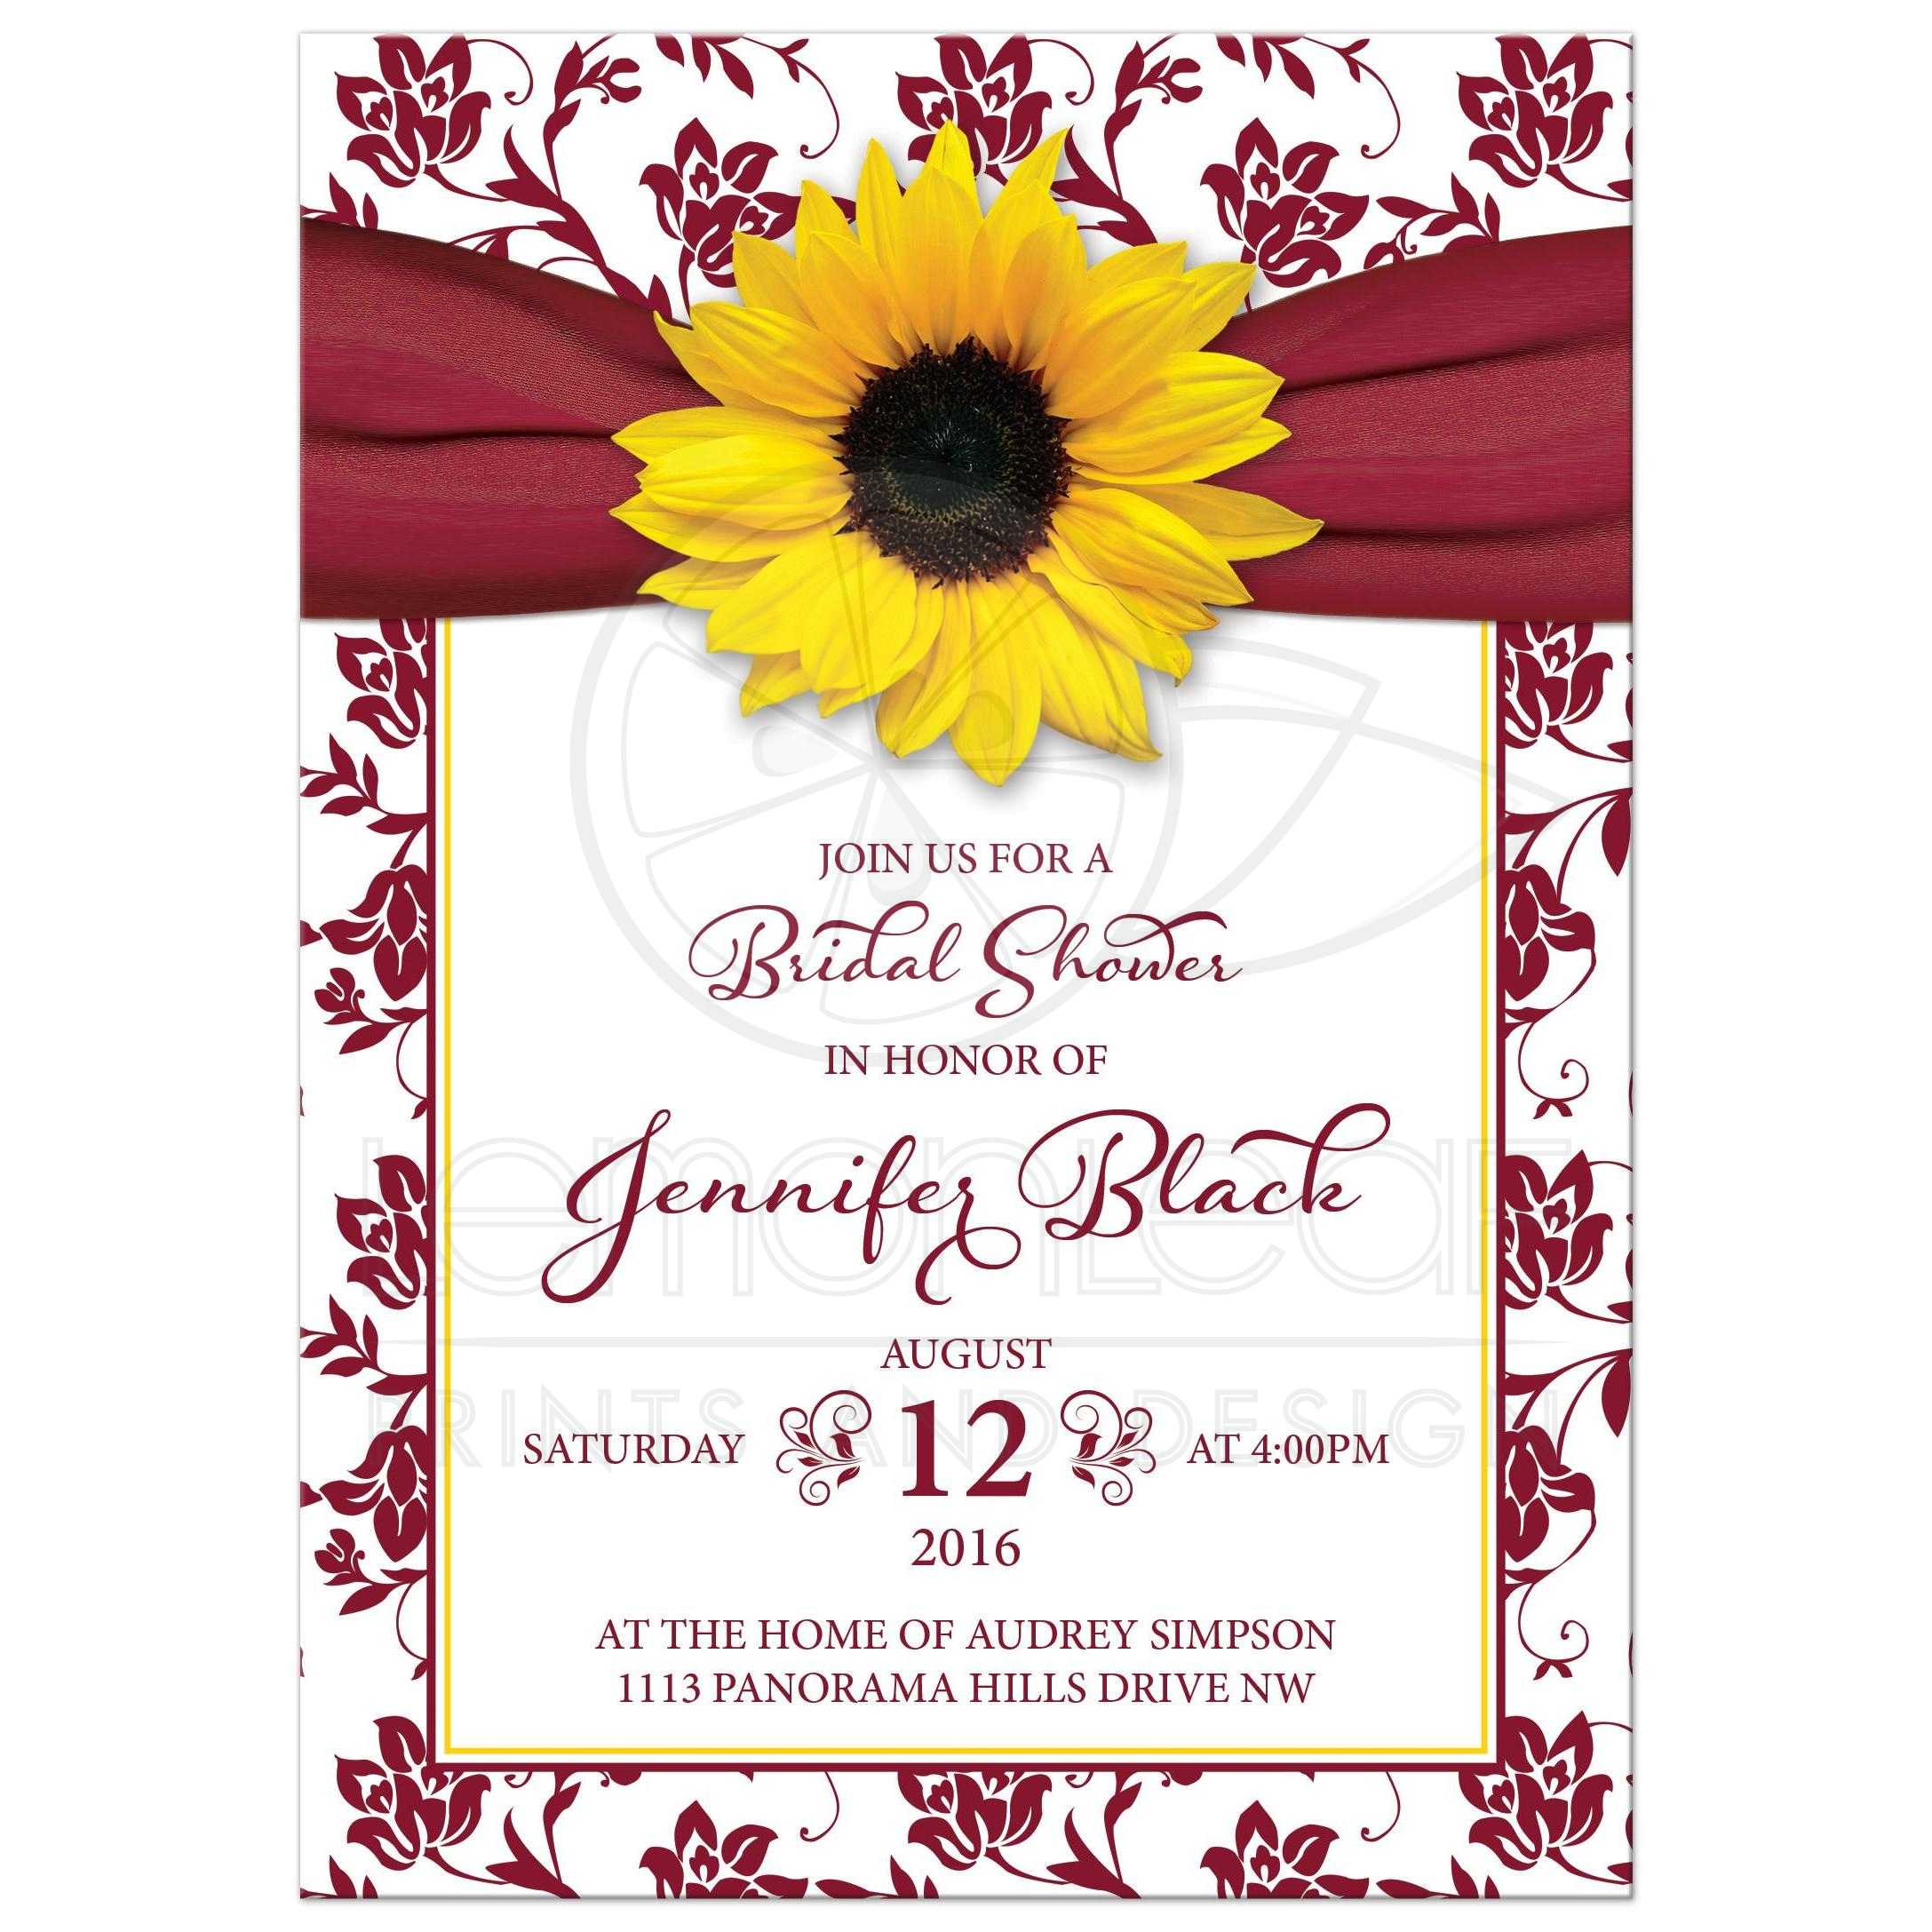 Fall sunflower bridal shower invitation burgundy yellow ribbon floral sunflower burgundy ribbon damask floral fall bridal shower invitation front filmwisefo